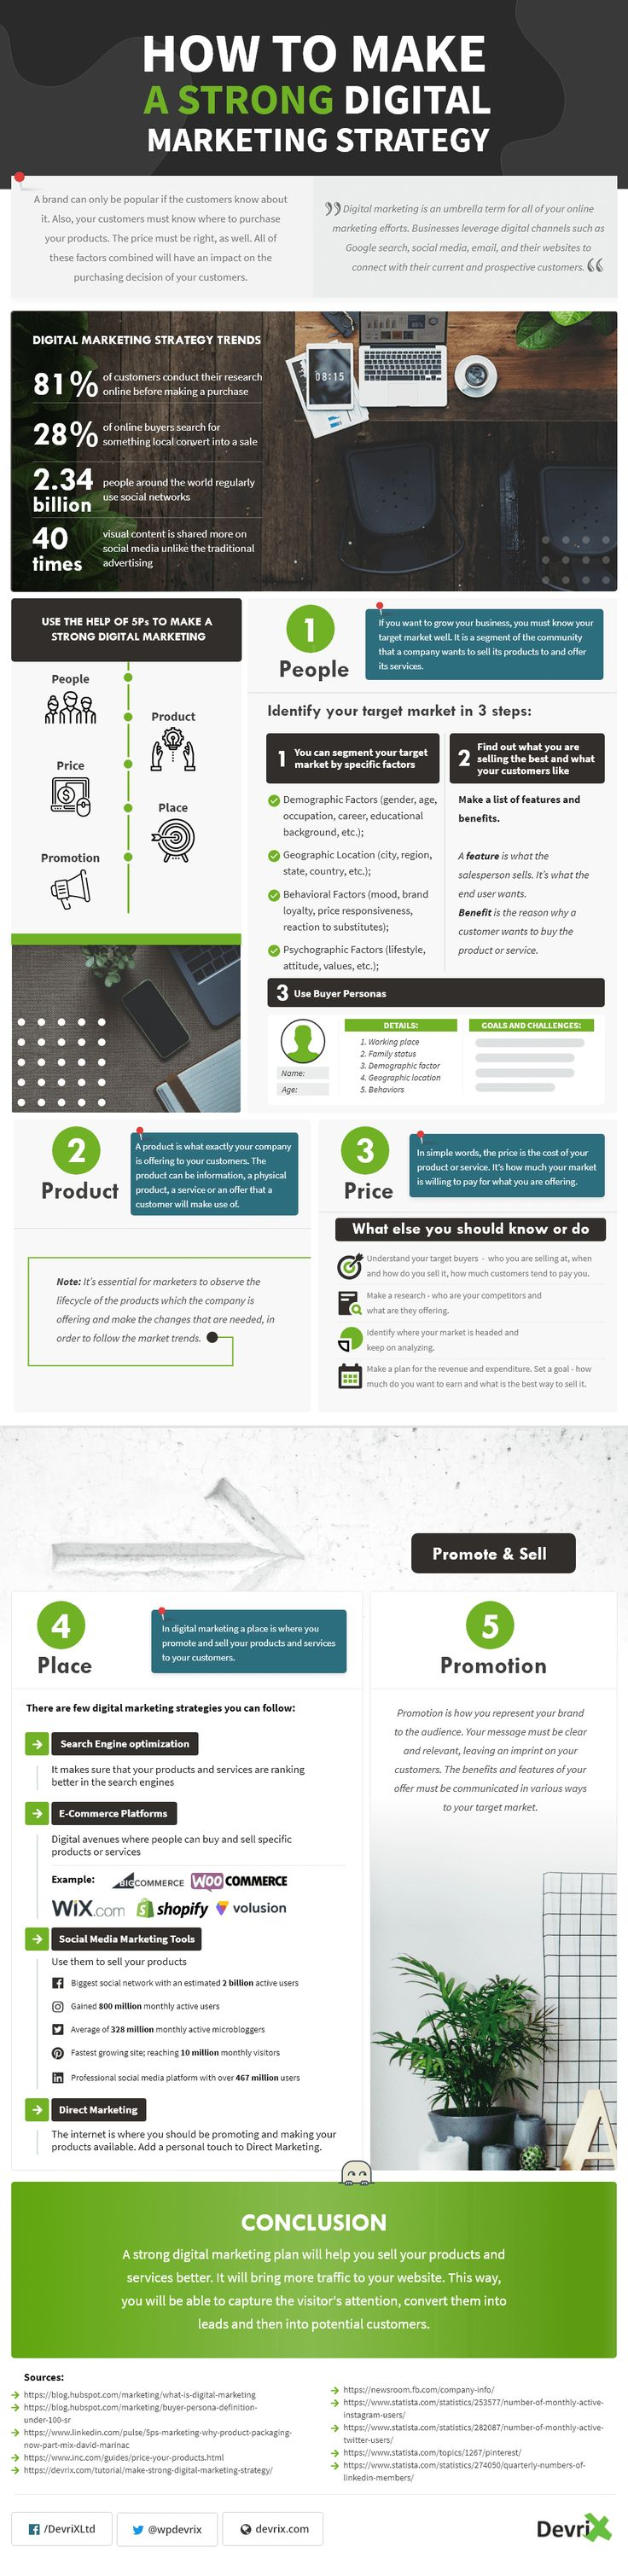 Digital-Marketing-How-to-Make-a-Strong-Digital-Marketing-Strategy-infographic Digital Marketing : How to Make a Strong Digital Marketing Strategy - #infographic